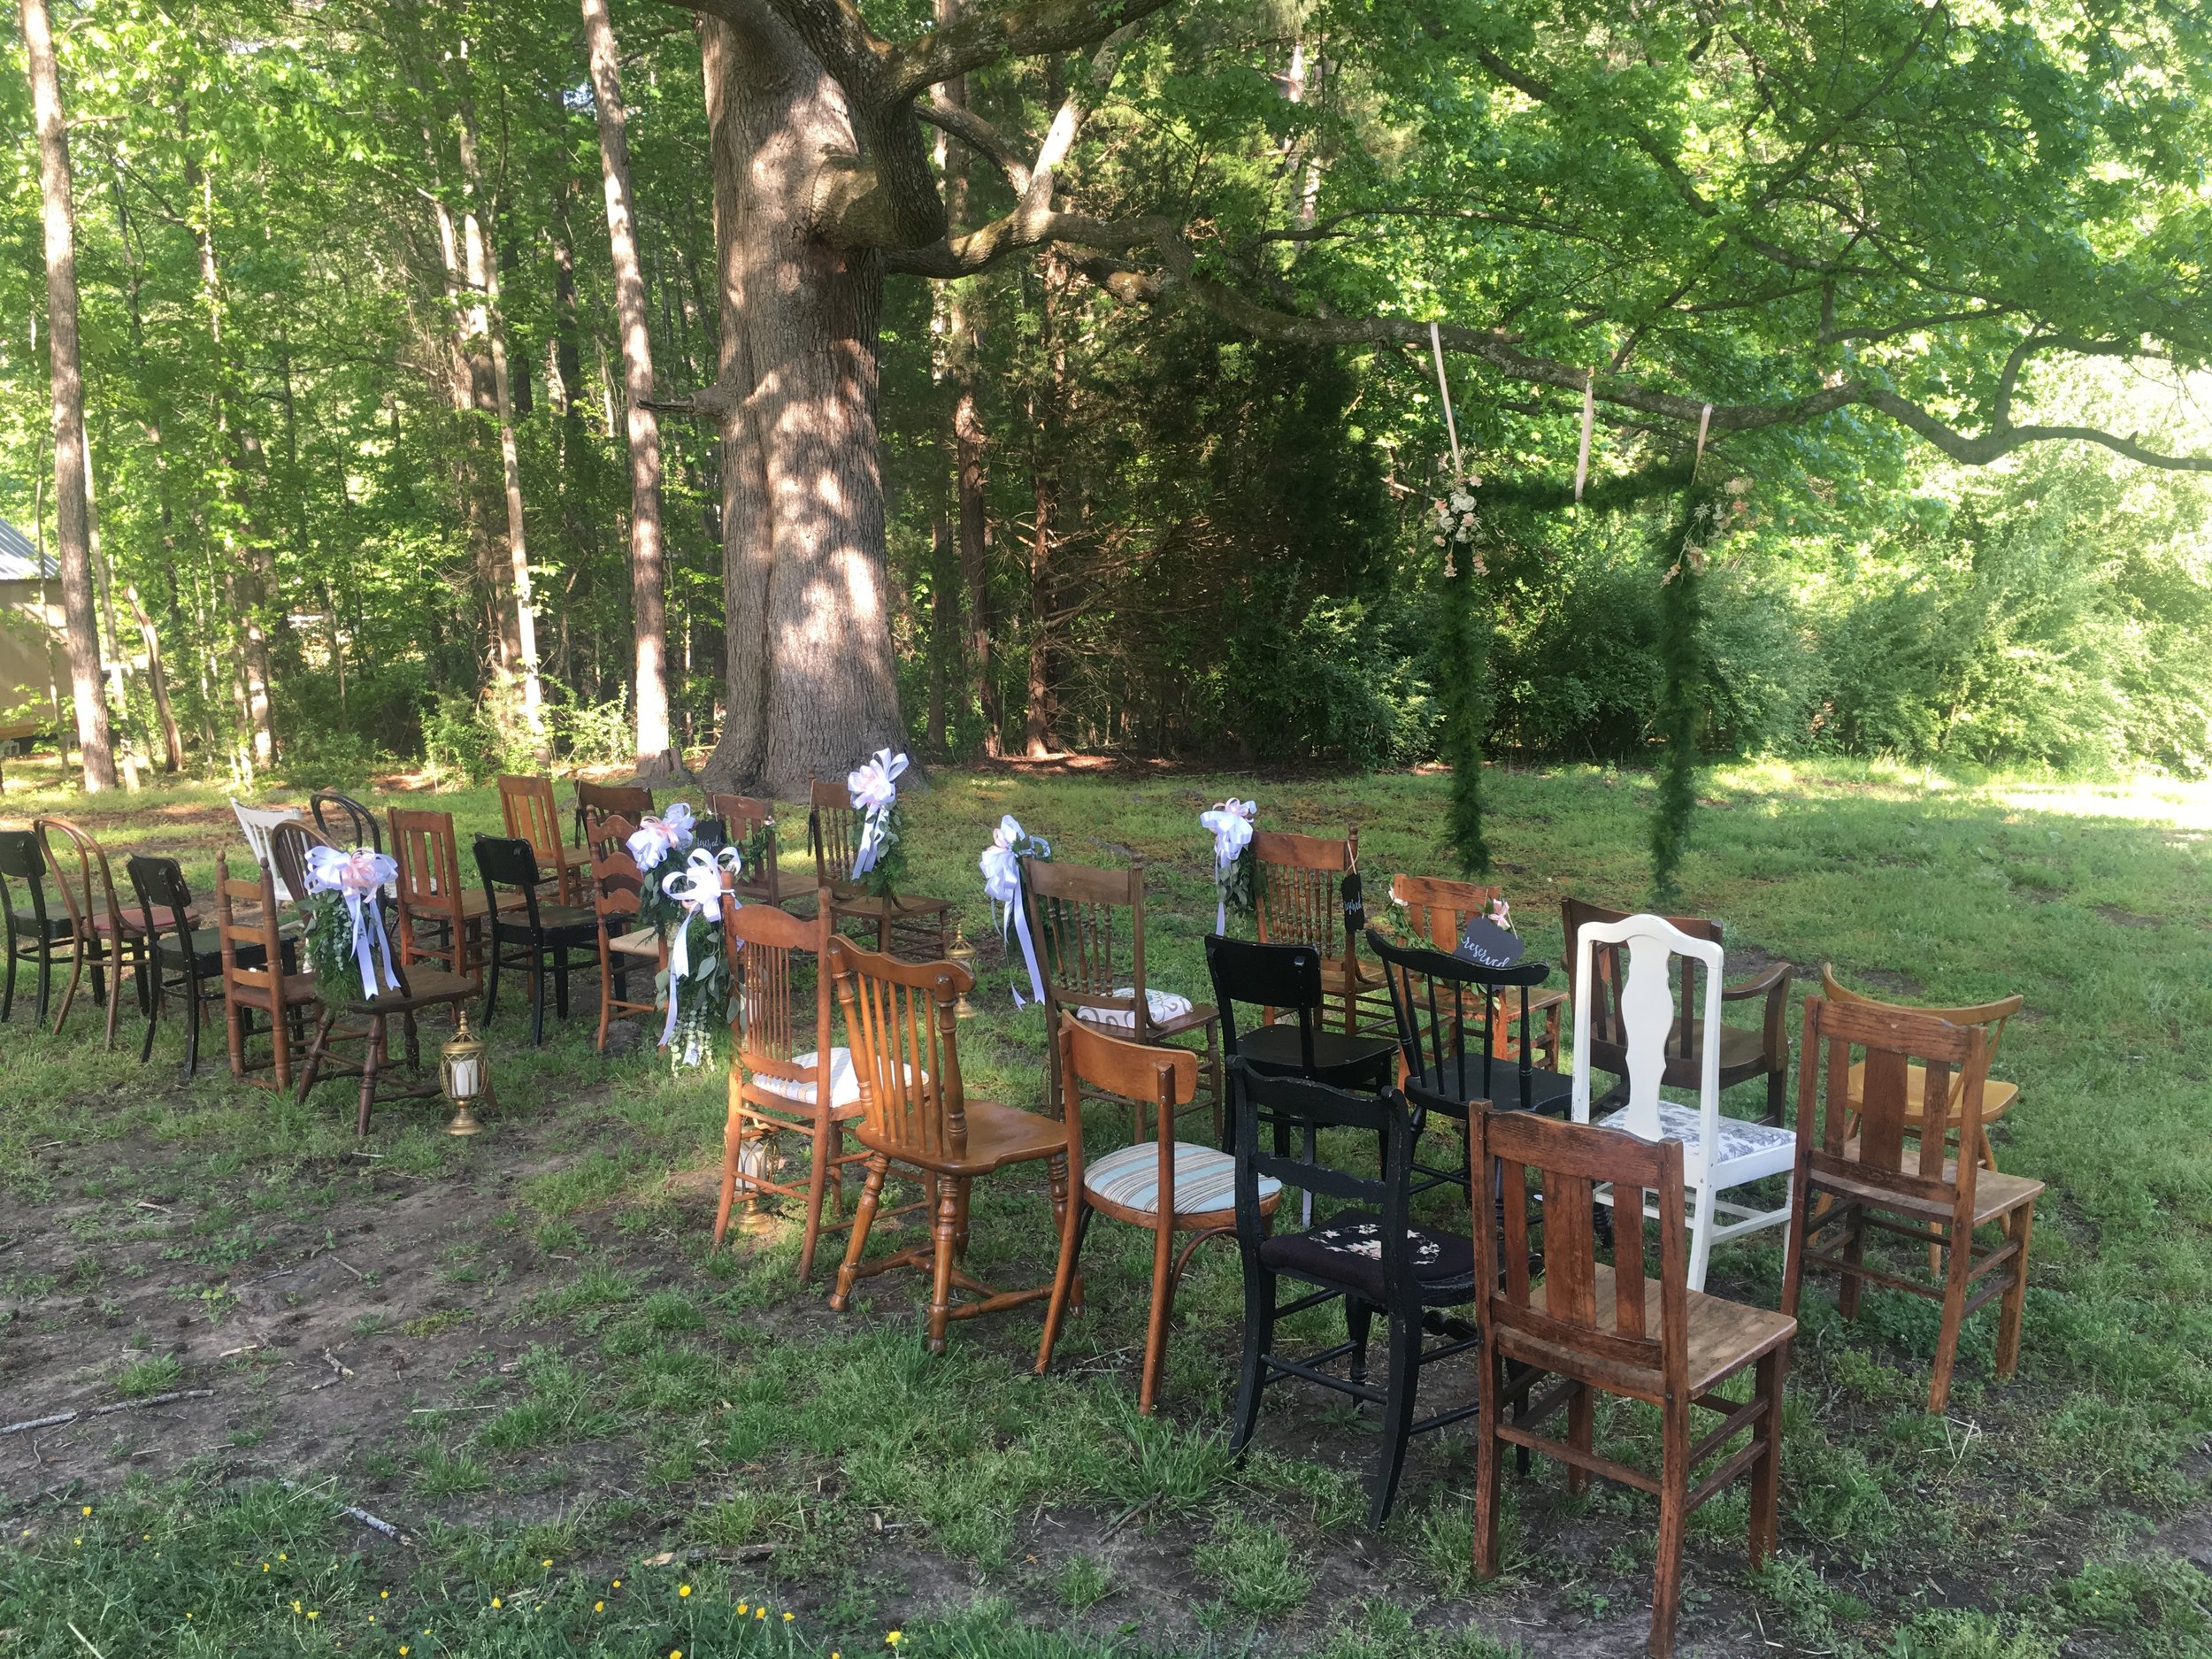 Set up for a beautiful wedding ceremony.